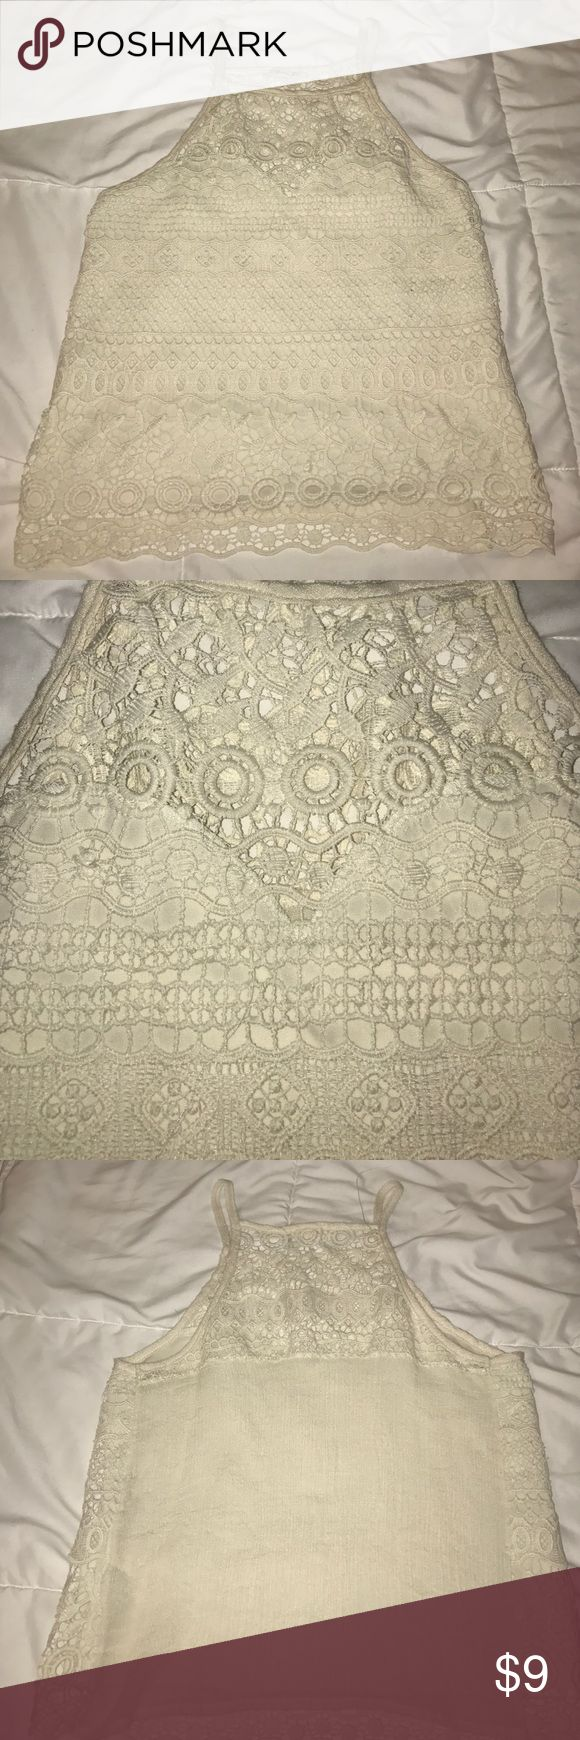 Cream Lace Tank Top Lace Tank too, size small worn a few times Tops Tank Tops